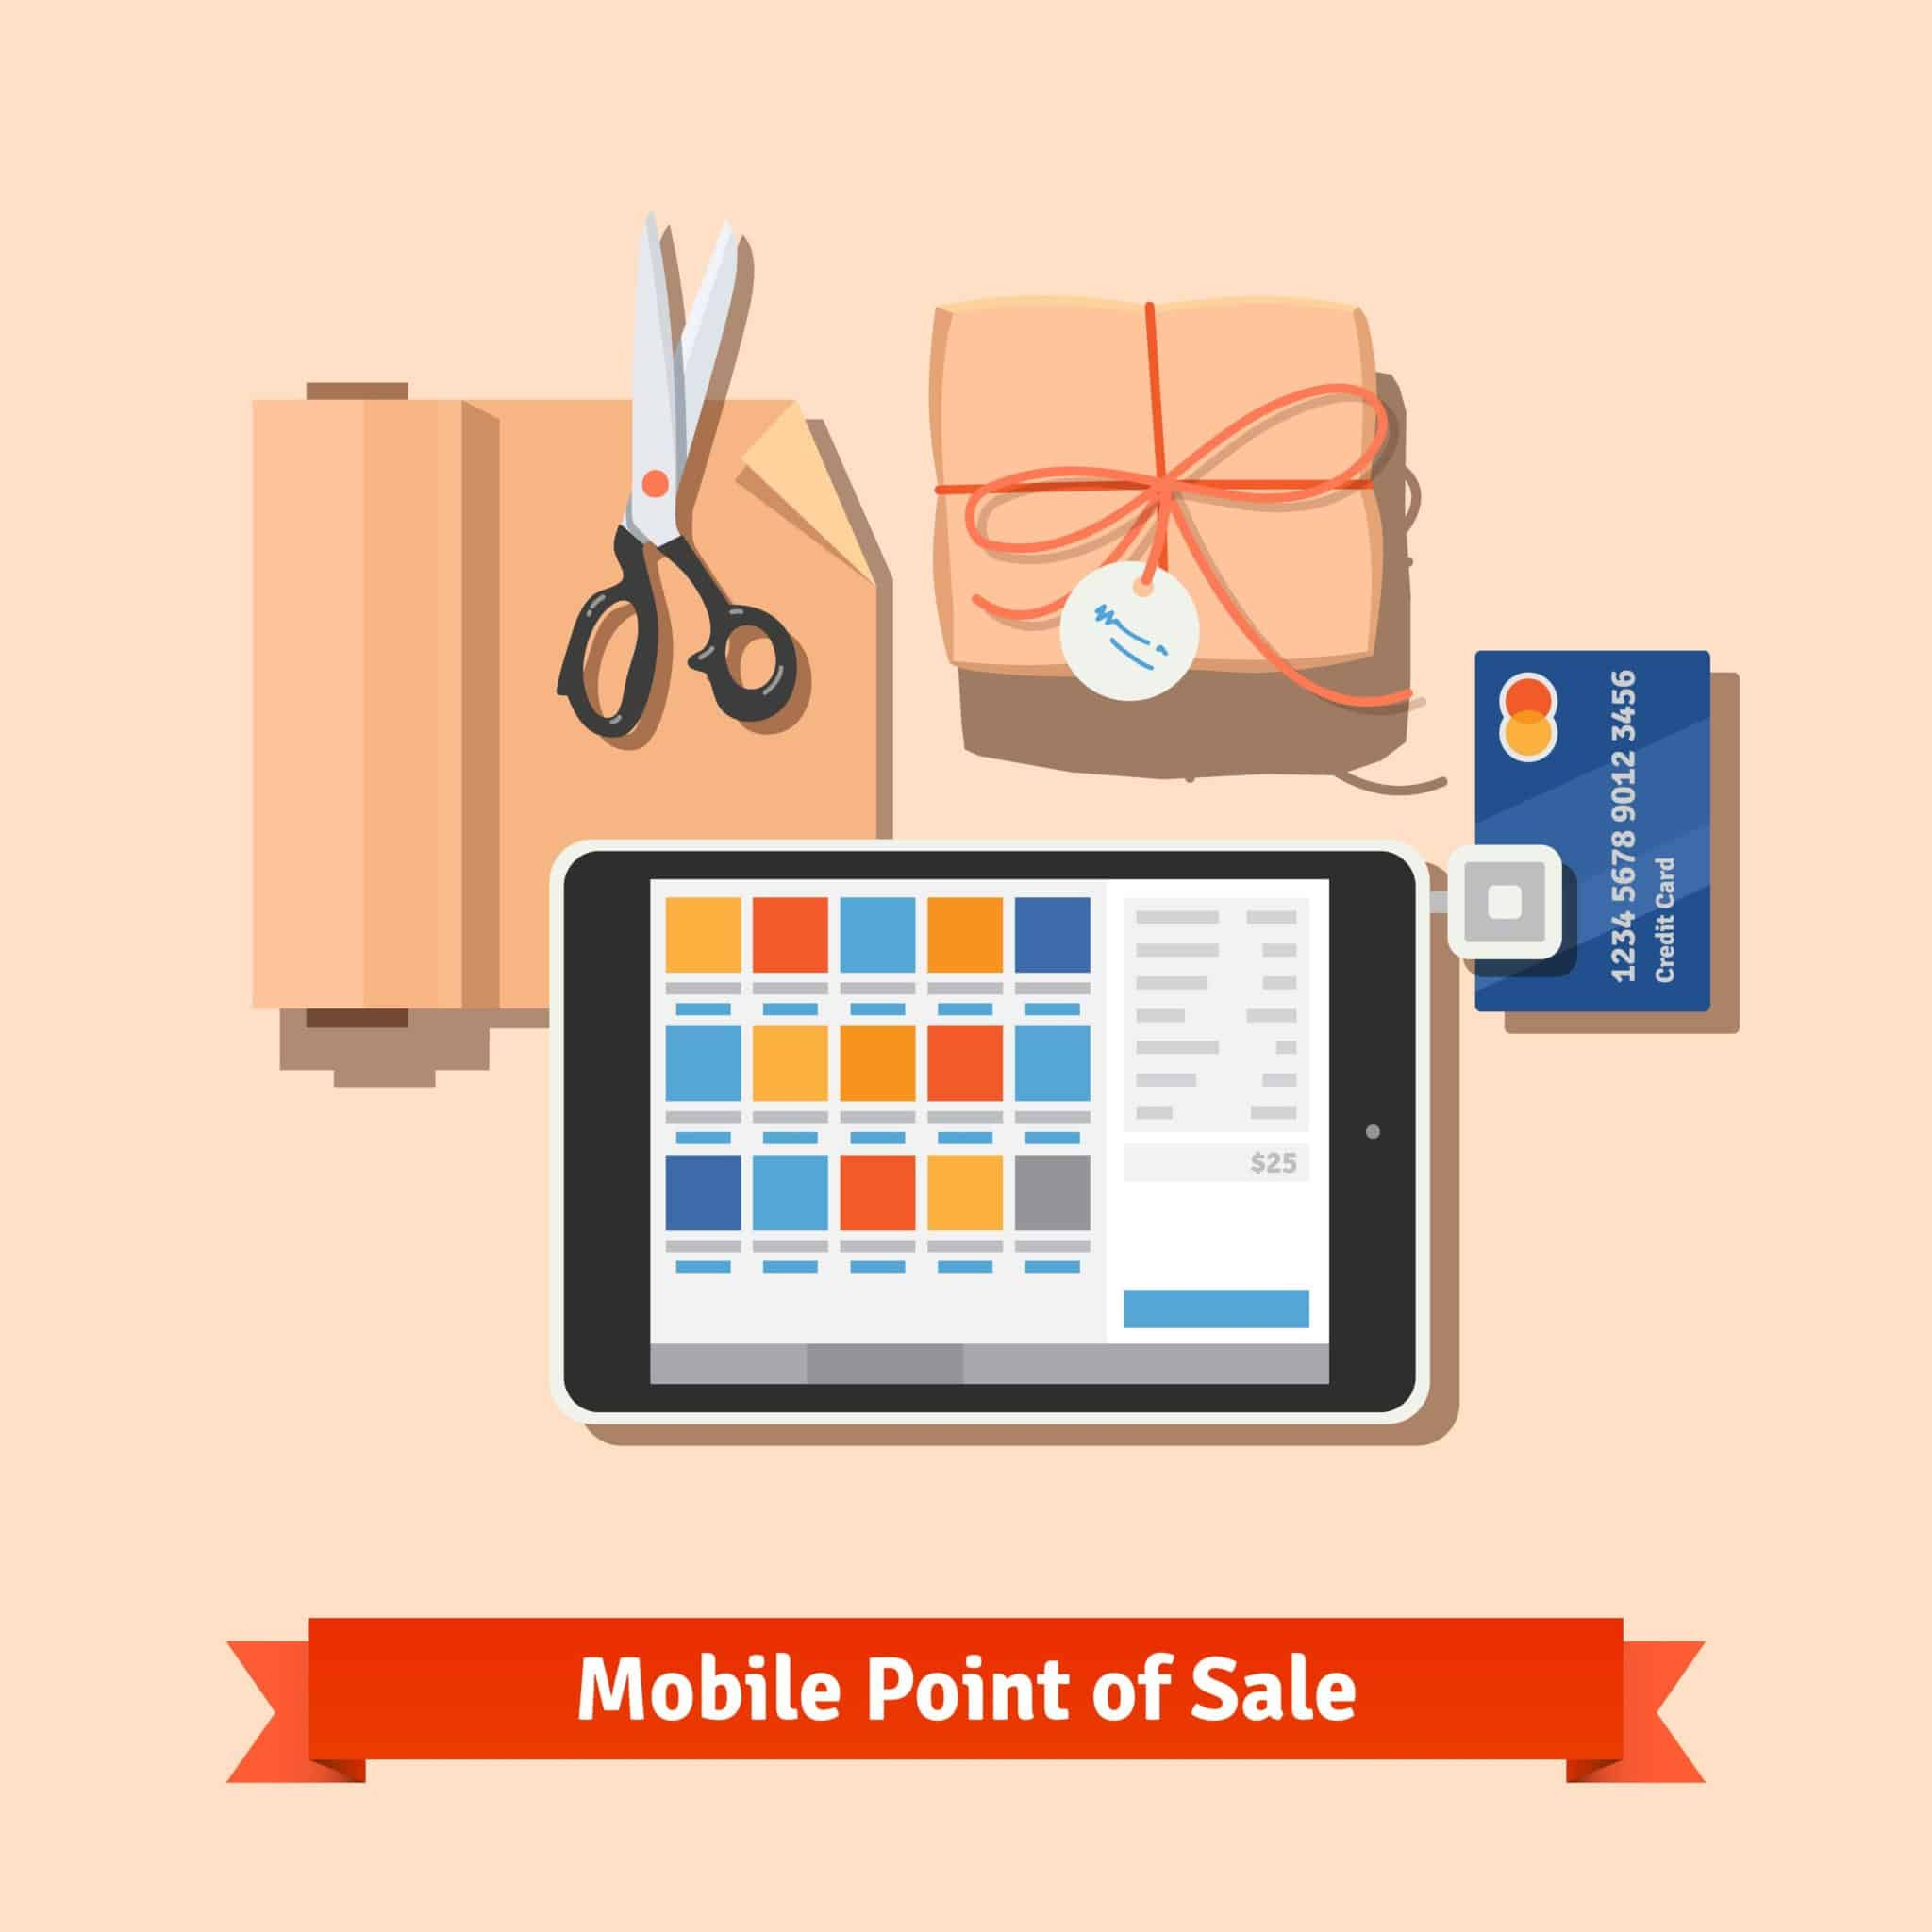 Small retail business payments: modern tablet POS terminal for credit card payments. Packaged purchase, wrapping paper and scissors. Flat vector illustration.